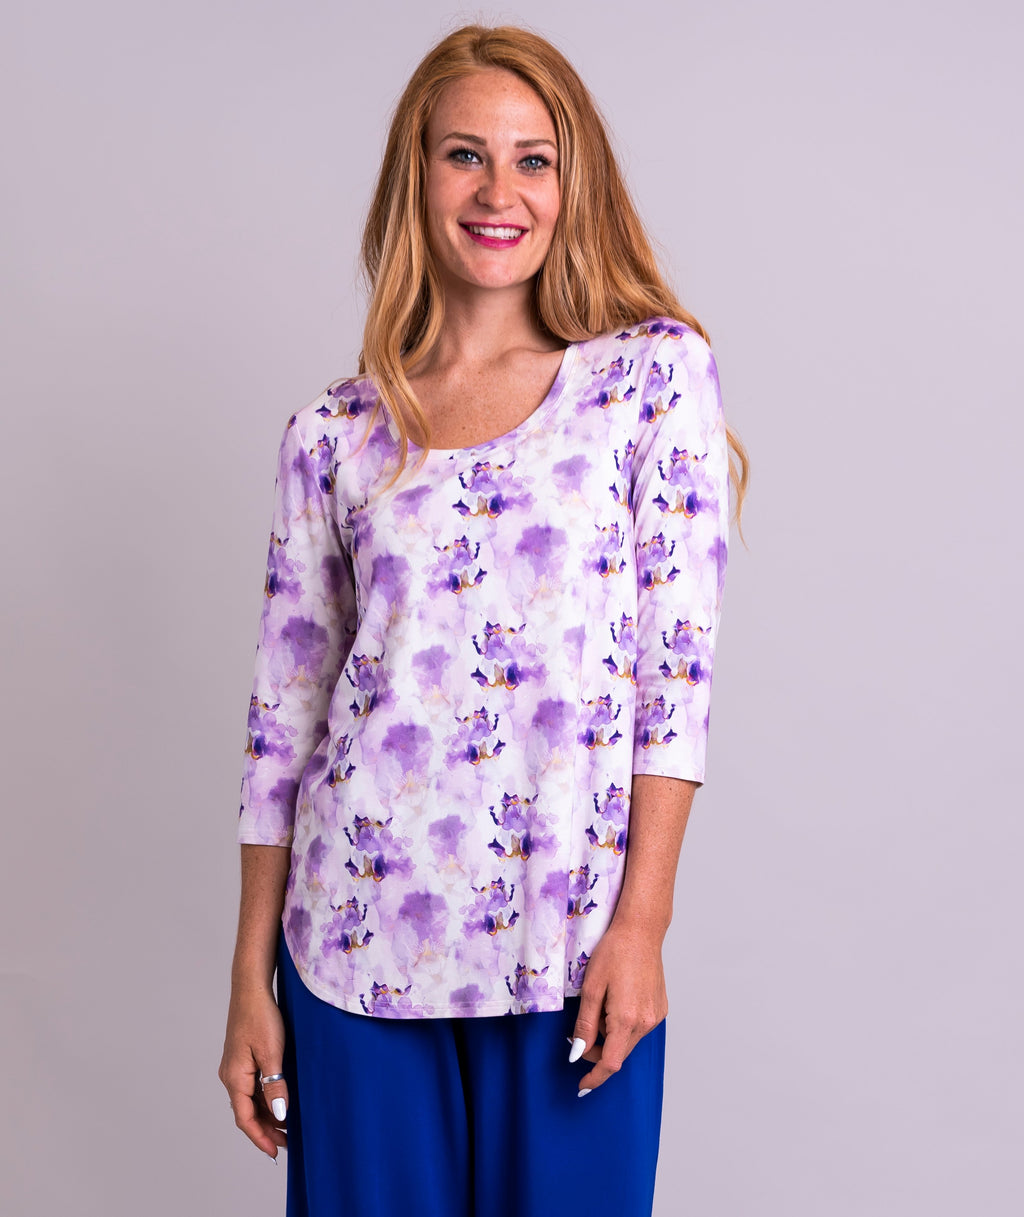 Jazz 3/4 Top, Orchid Watercolours, Bamboo - Blue Sky Clothing Co